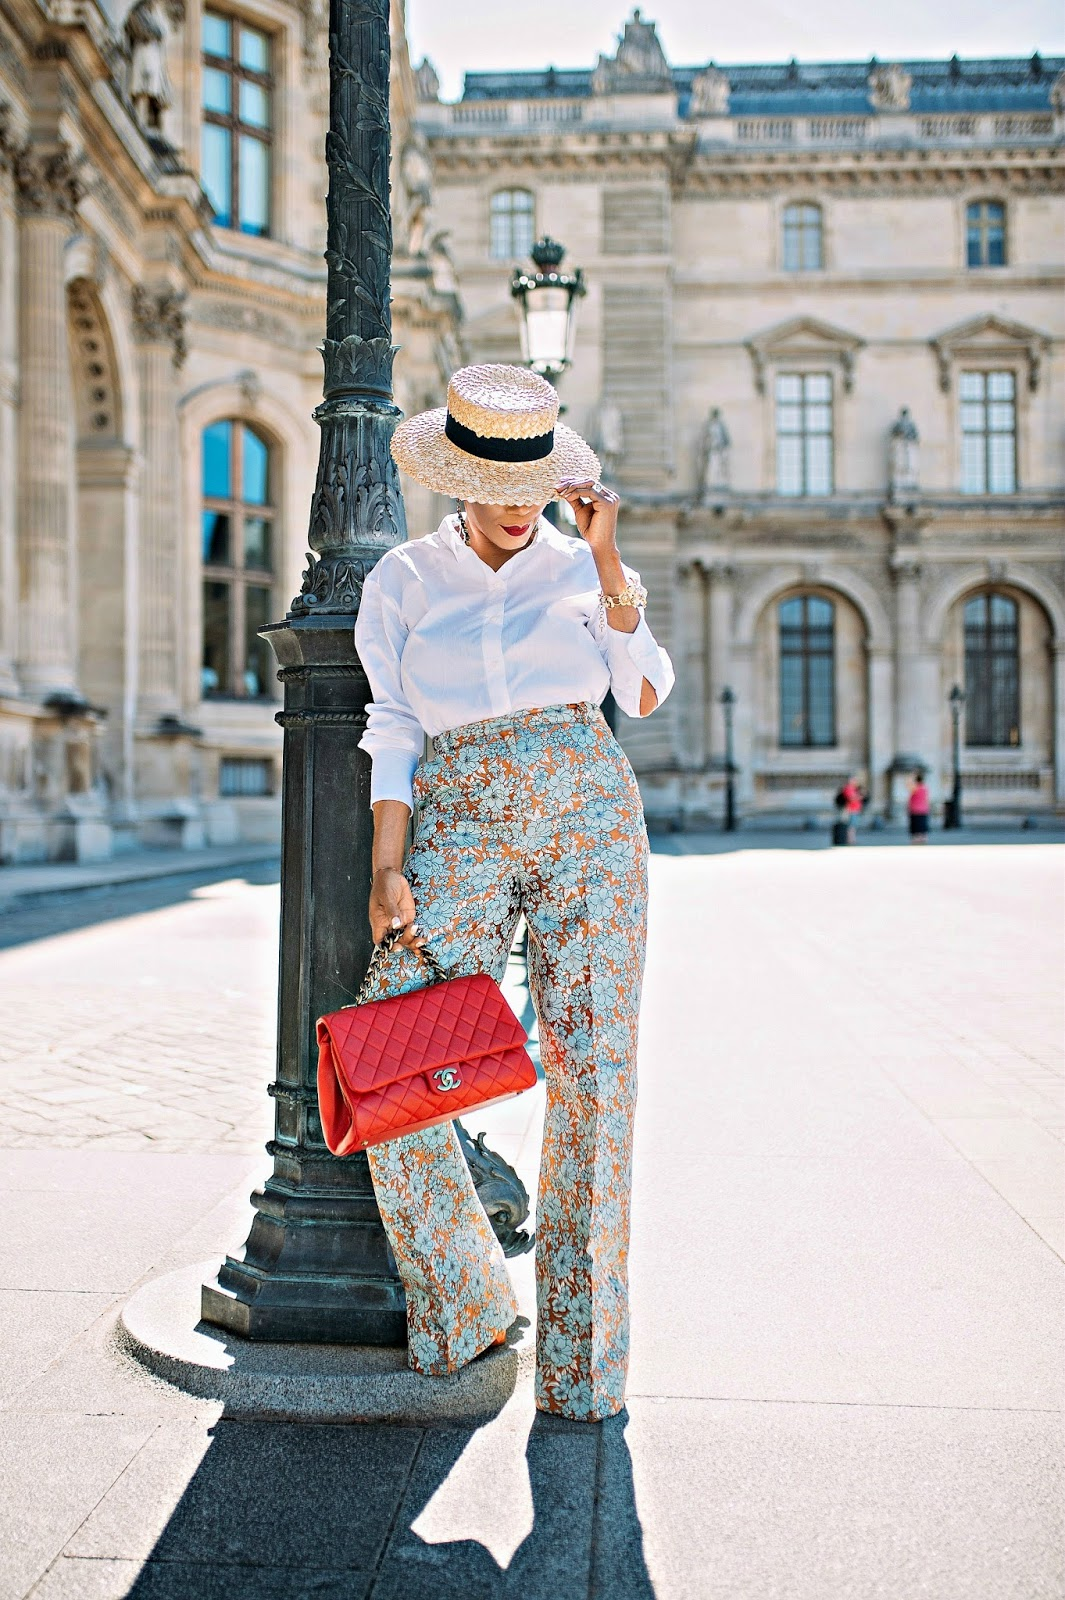 Floral jacquard pants with classic white shirt and boater hat